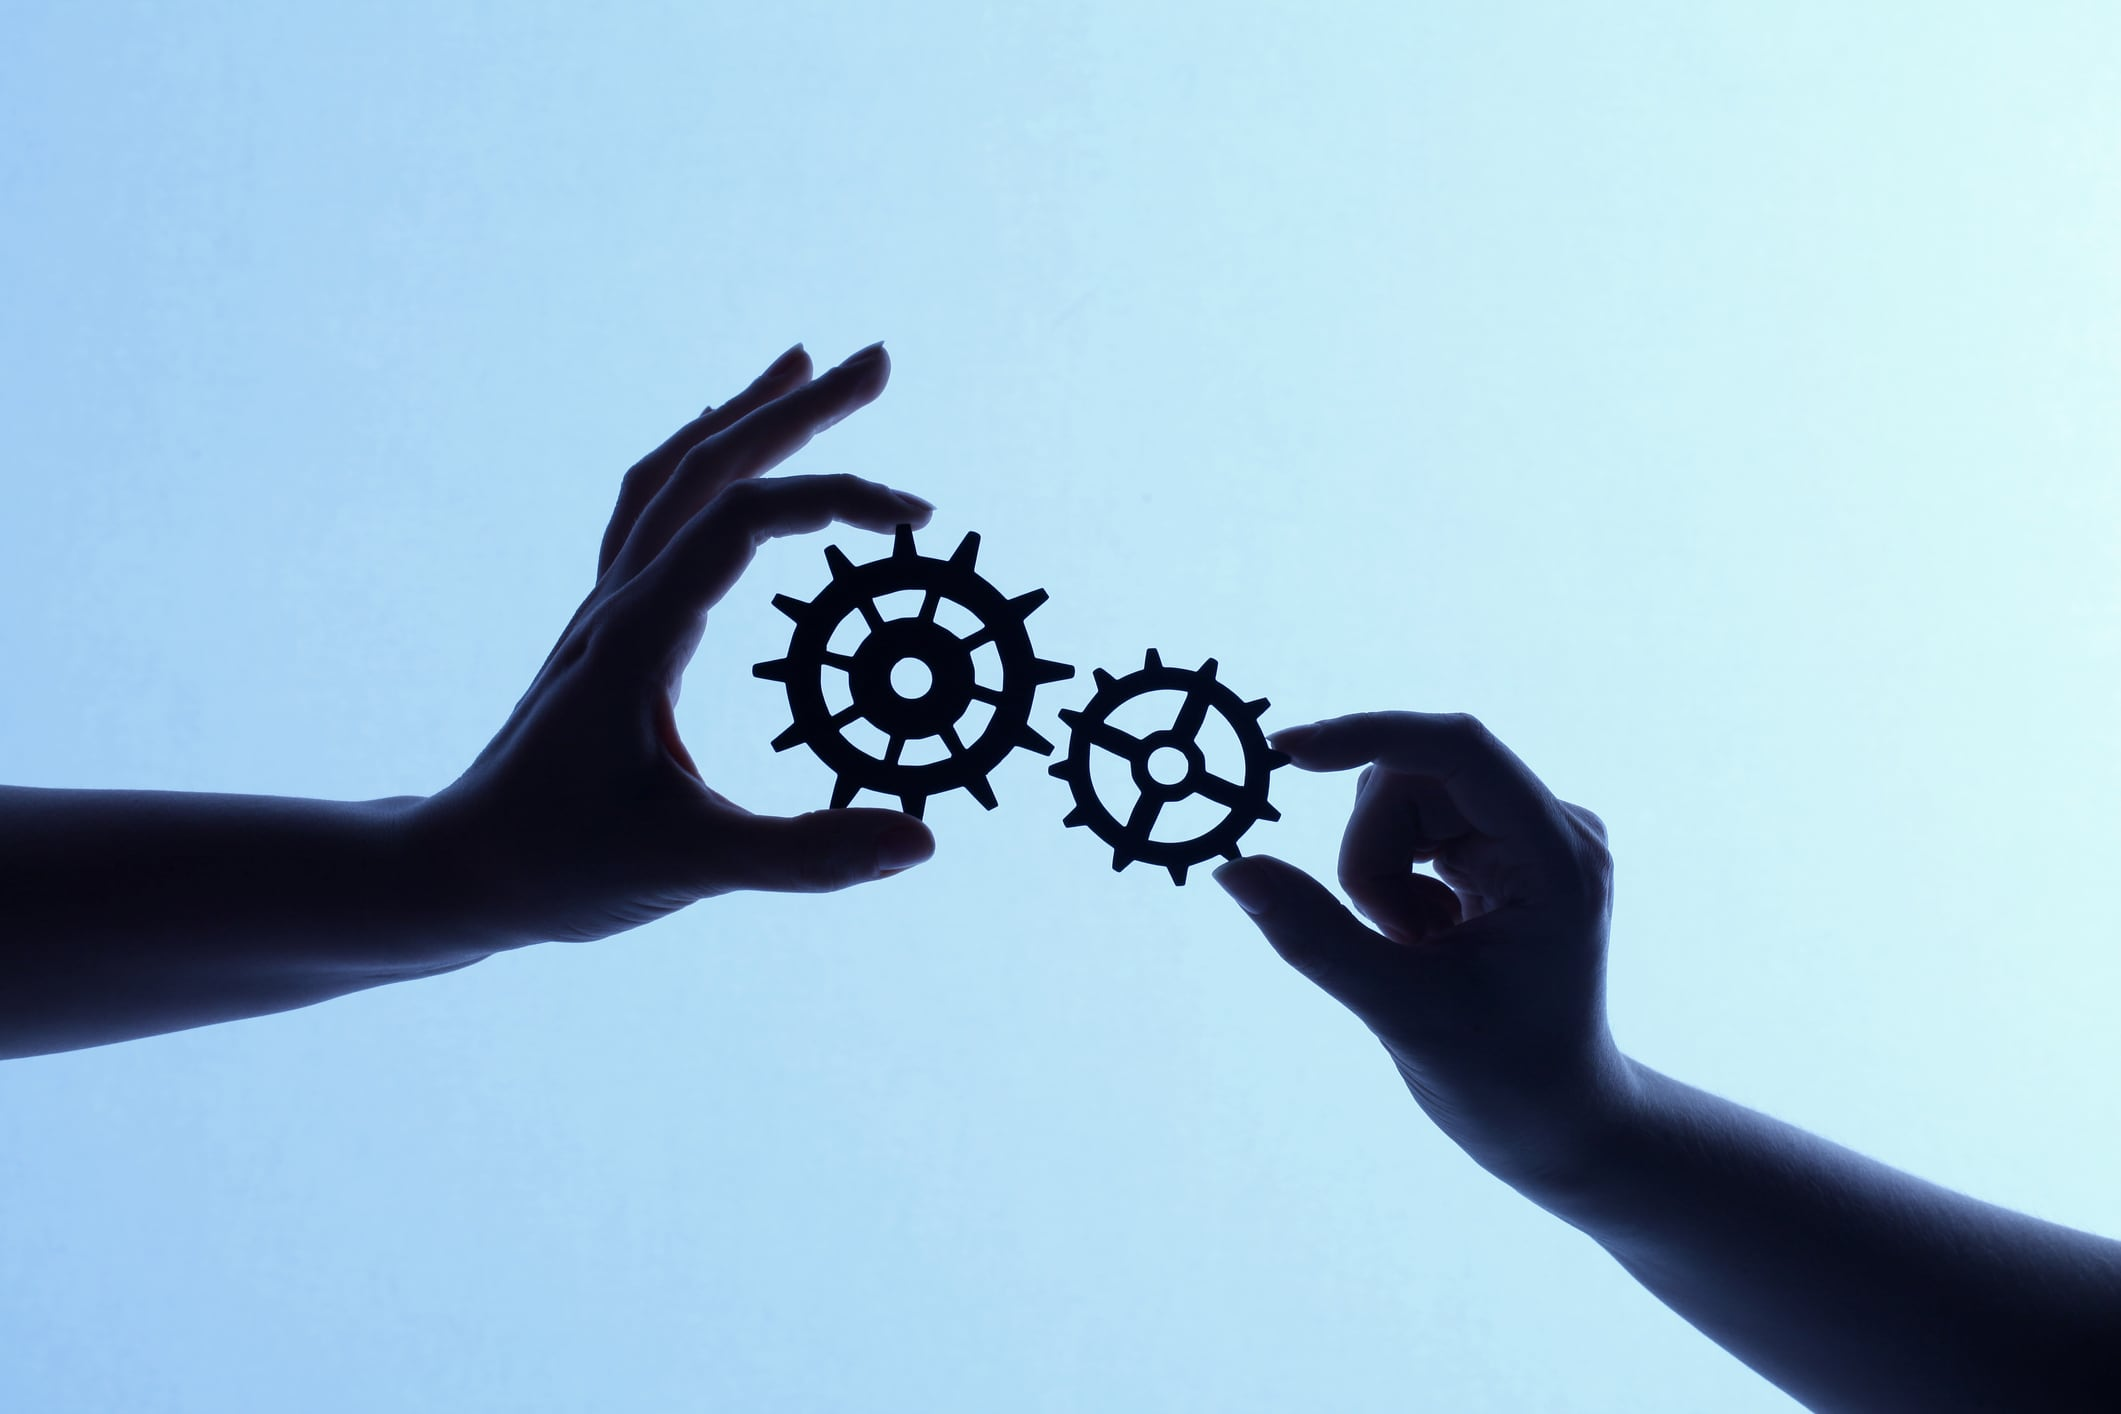 Image showing two backlit shilouetted hands holding mechanical style cogs and gears of various sizes on a blue gradient background. Each gear wheel fits together into the larger system creating the idea of teamwork and cooperation. http://i119.photobucket.com/albums/o144/mattjea/Gears.jpg